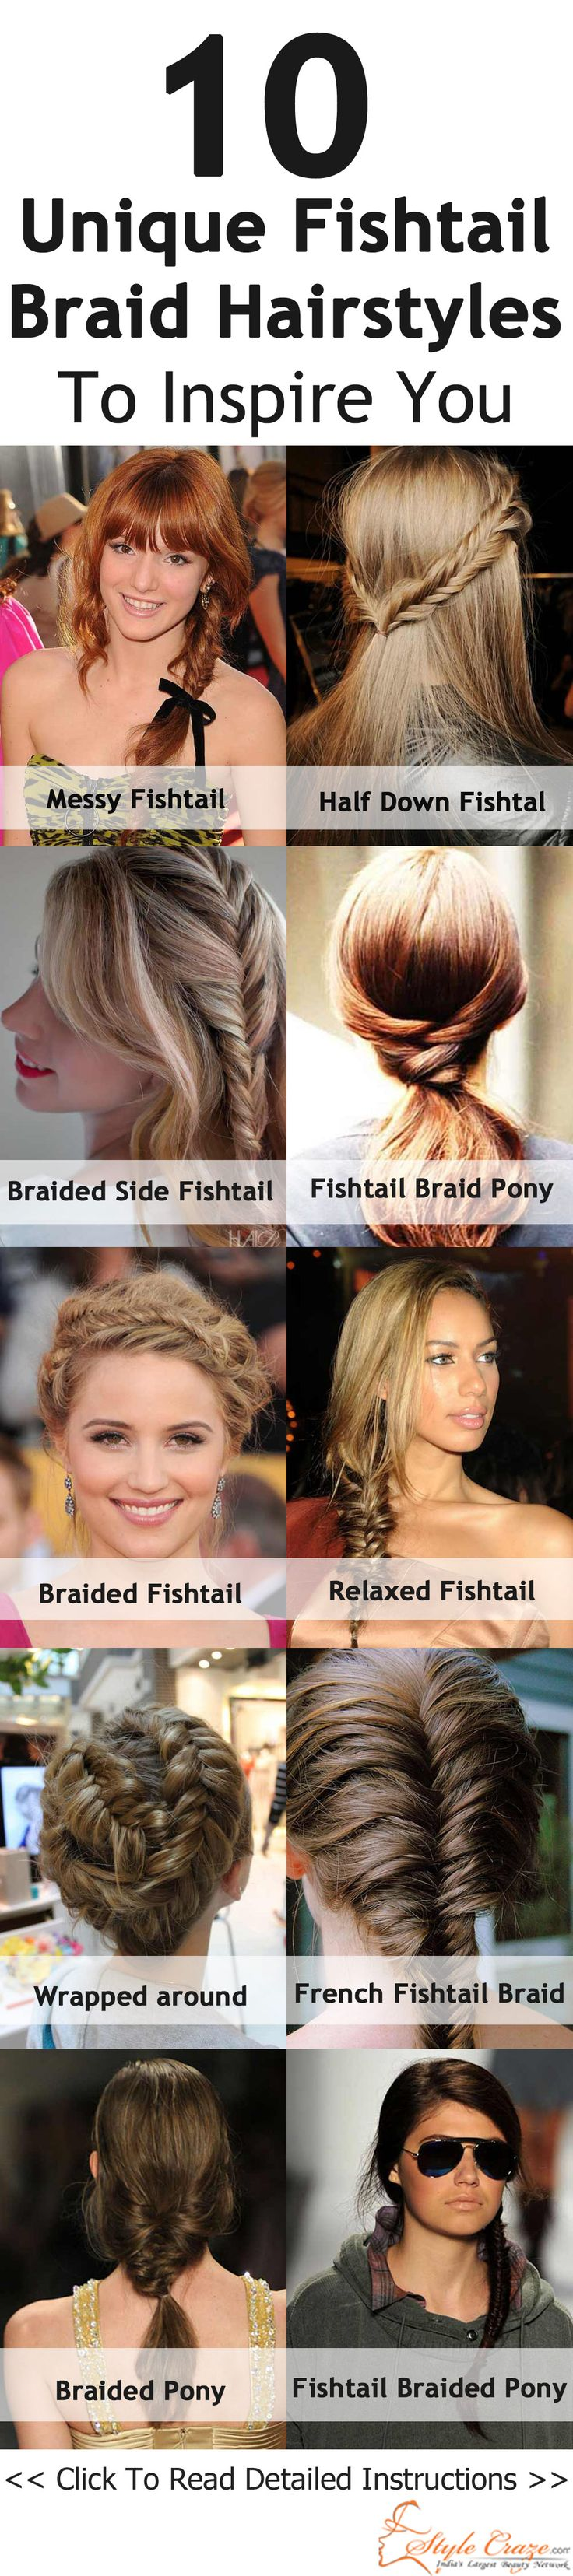 10 Unique Fishtail Braid Hairstyles To Inspire You : This is mainly because this Braid hairstyle has undergone a lot changes over time. Here are some of the best styles!